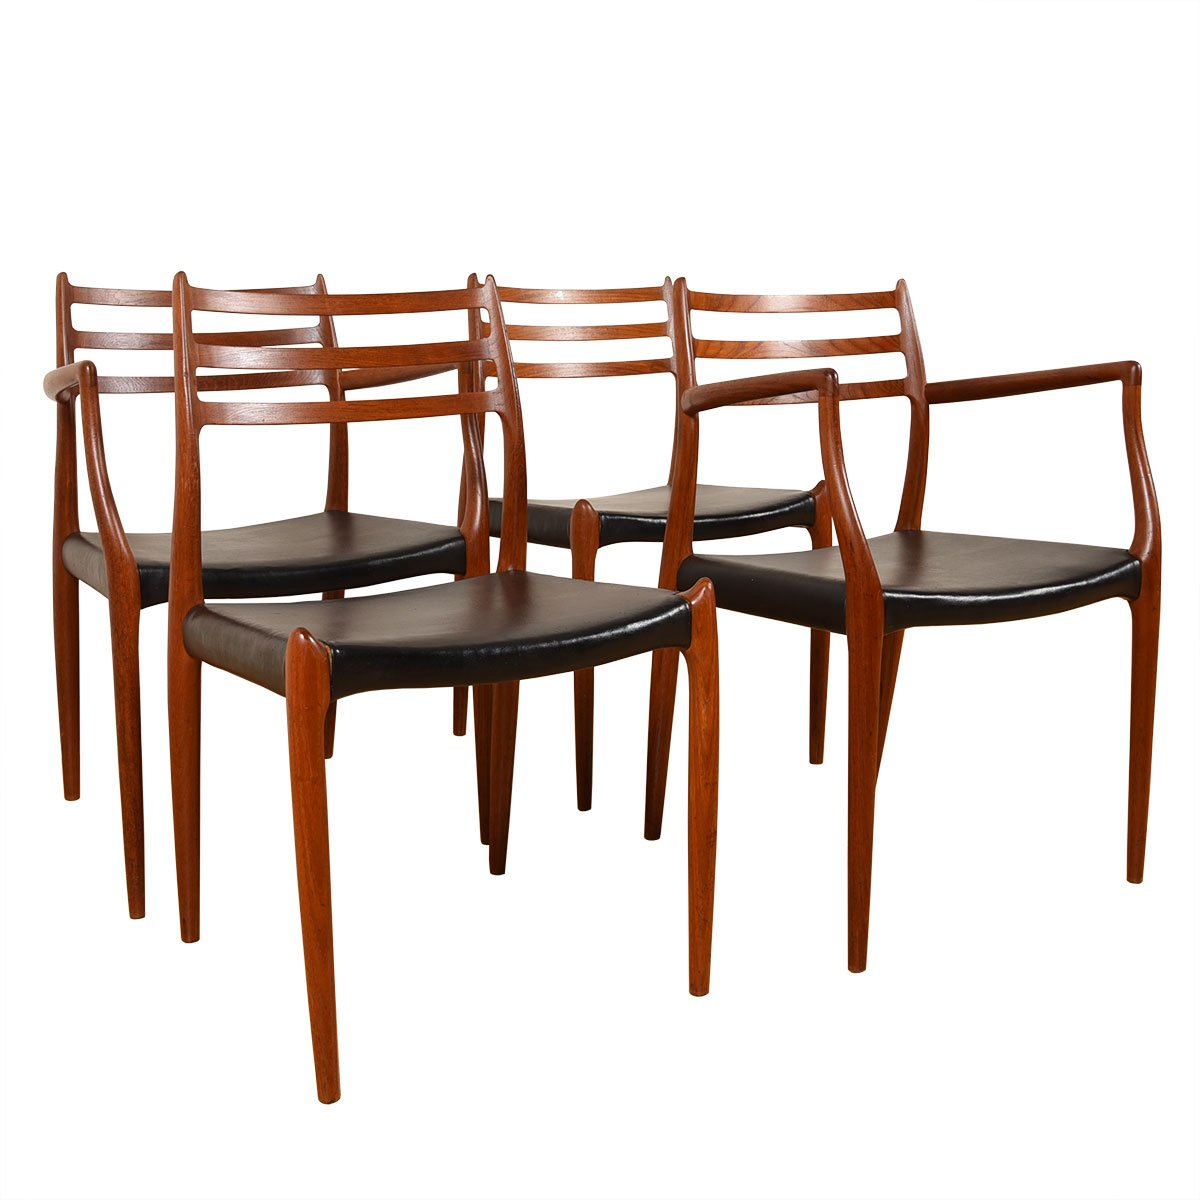 Set of 4 Niels Møller Teak Dining Chairs (2 Arm + 2 Side)